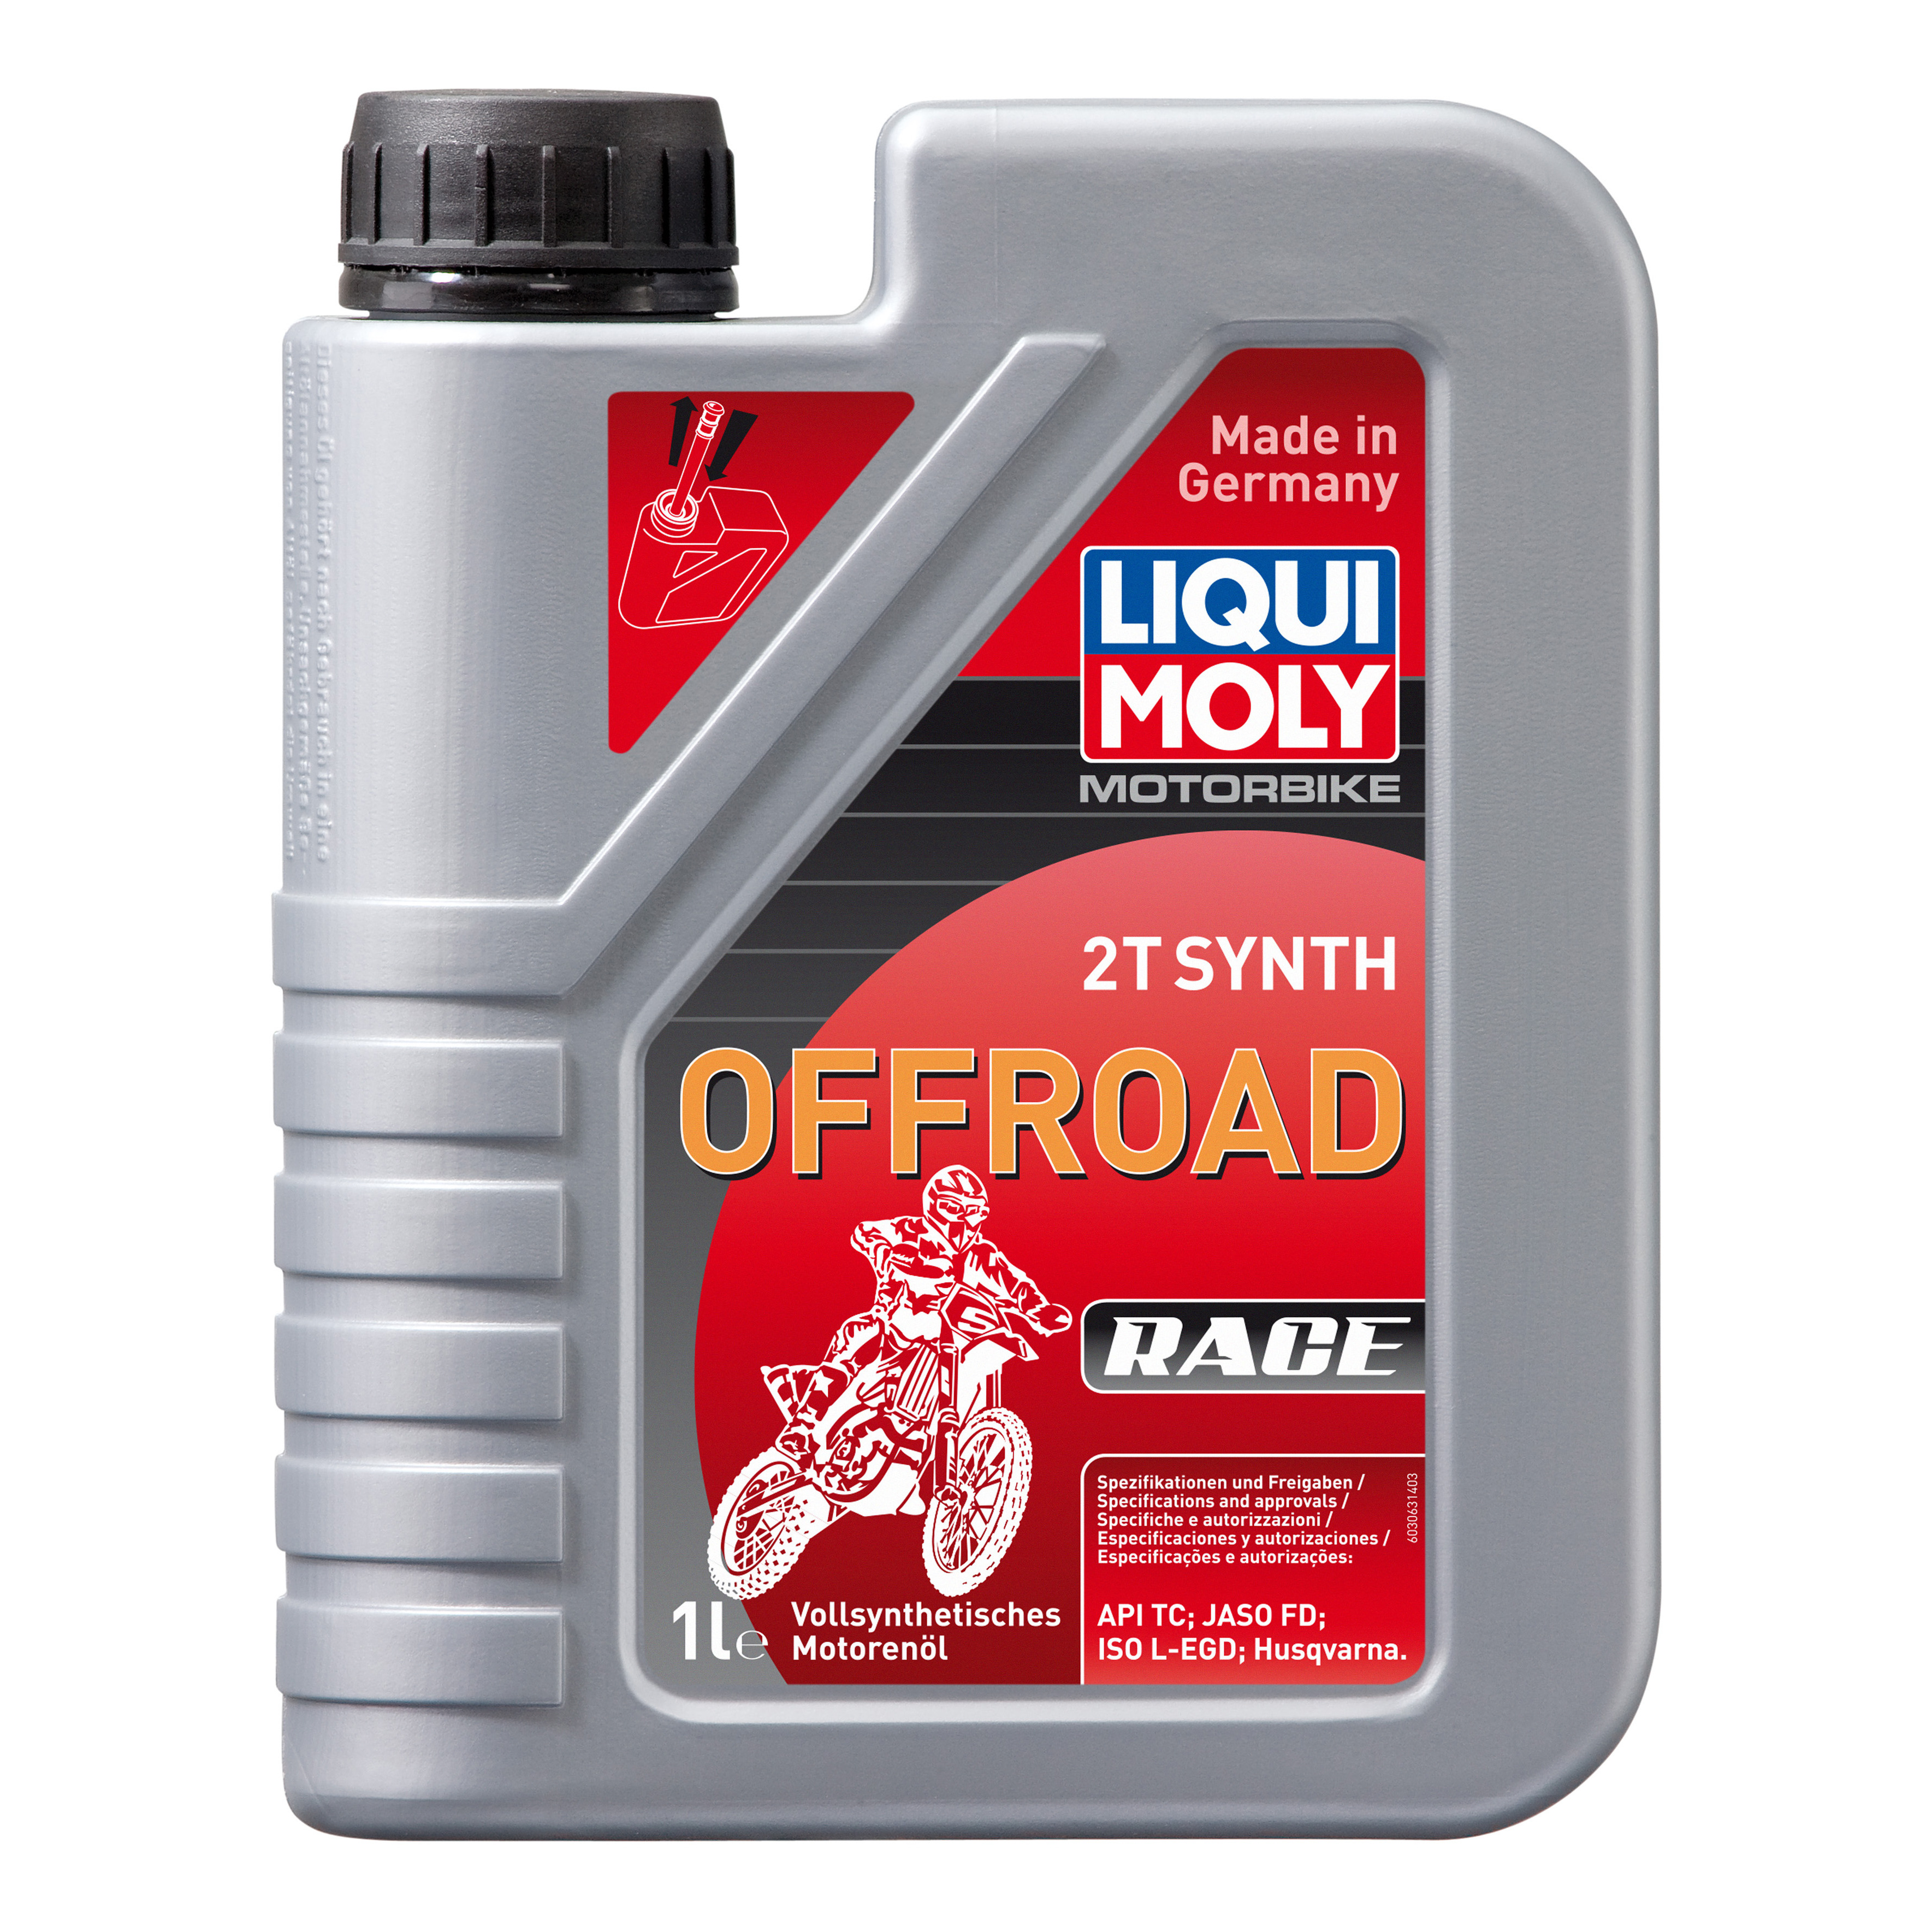 Моторное масло Liqui moly Motorbike 2T Synth Offroad Race 15W-40 1л